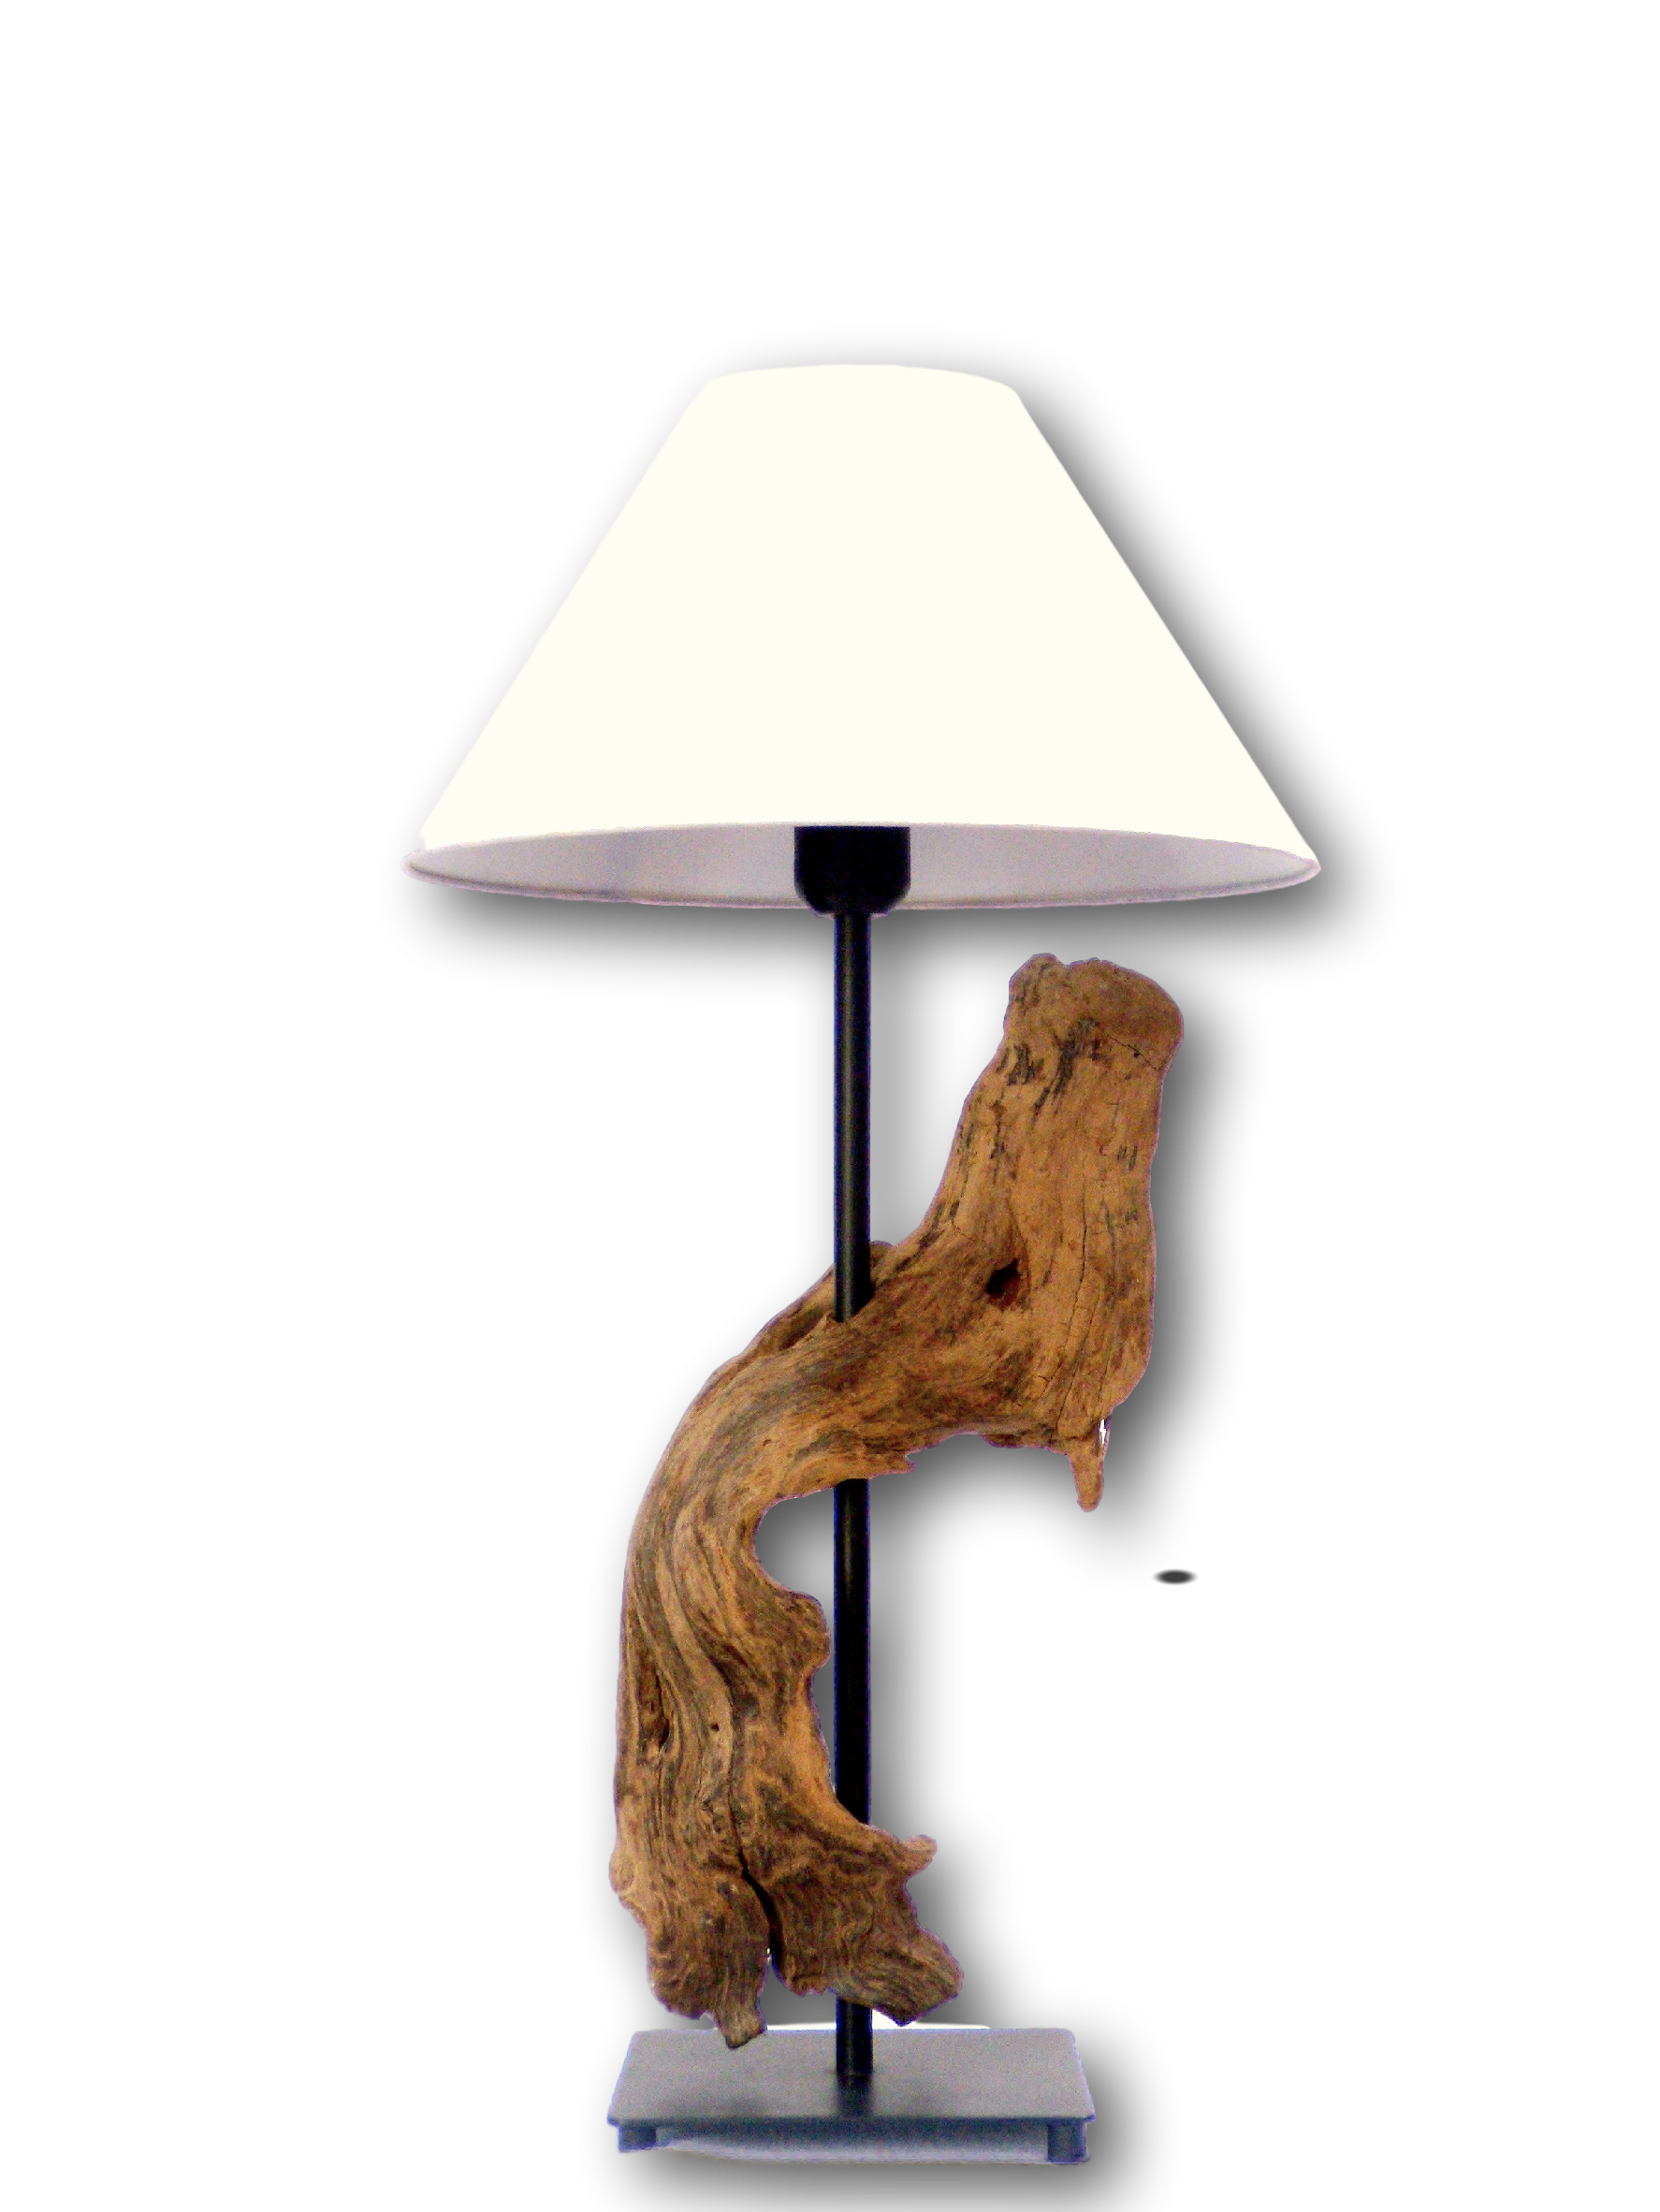 Lampe De Table De 58 Cm En Vente Sur Lampeenboisflotte Com Furniture Casters Discount Furniture Design